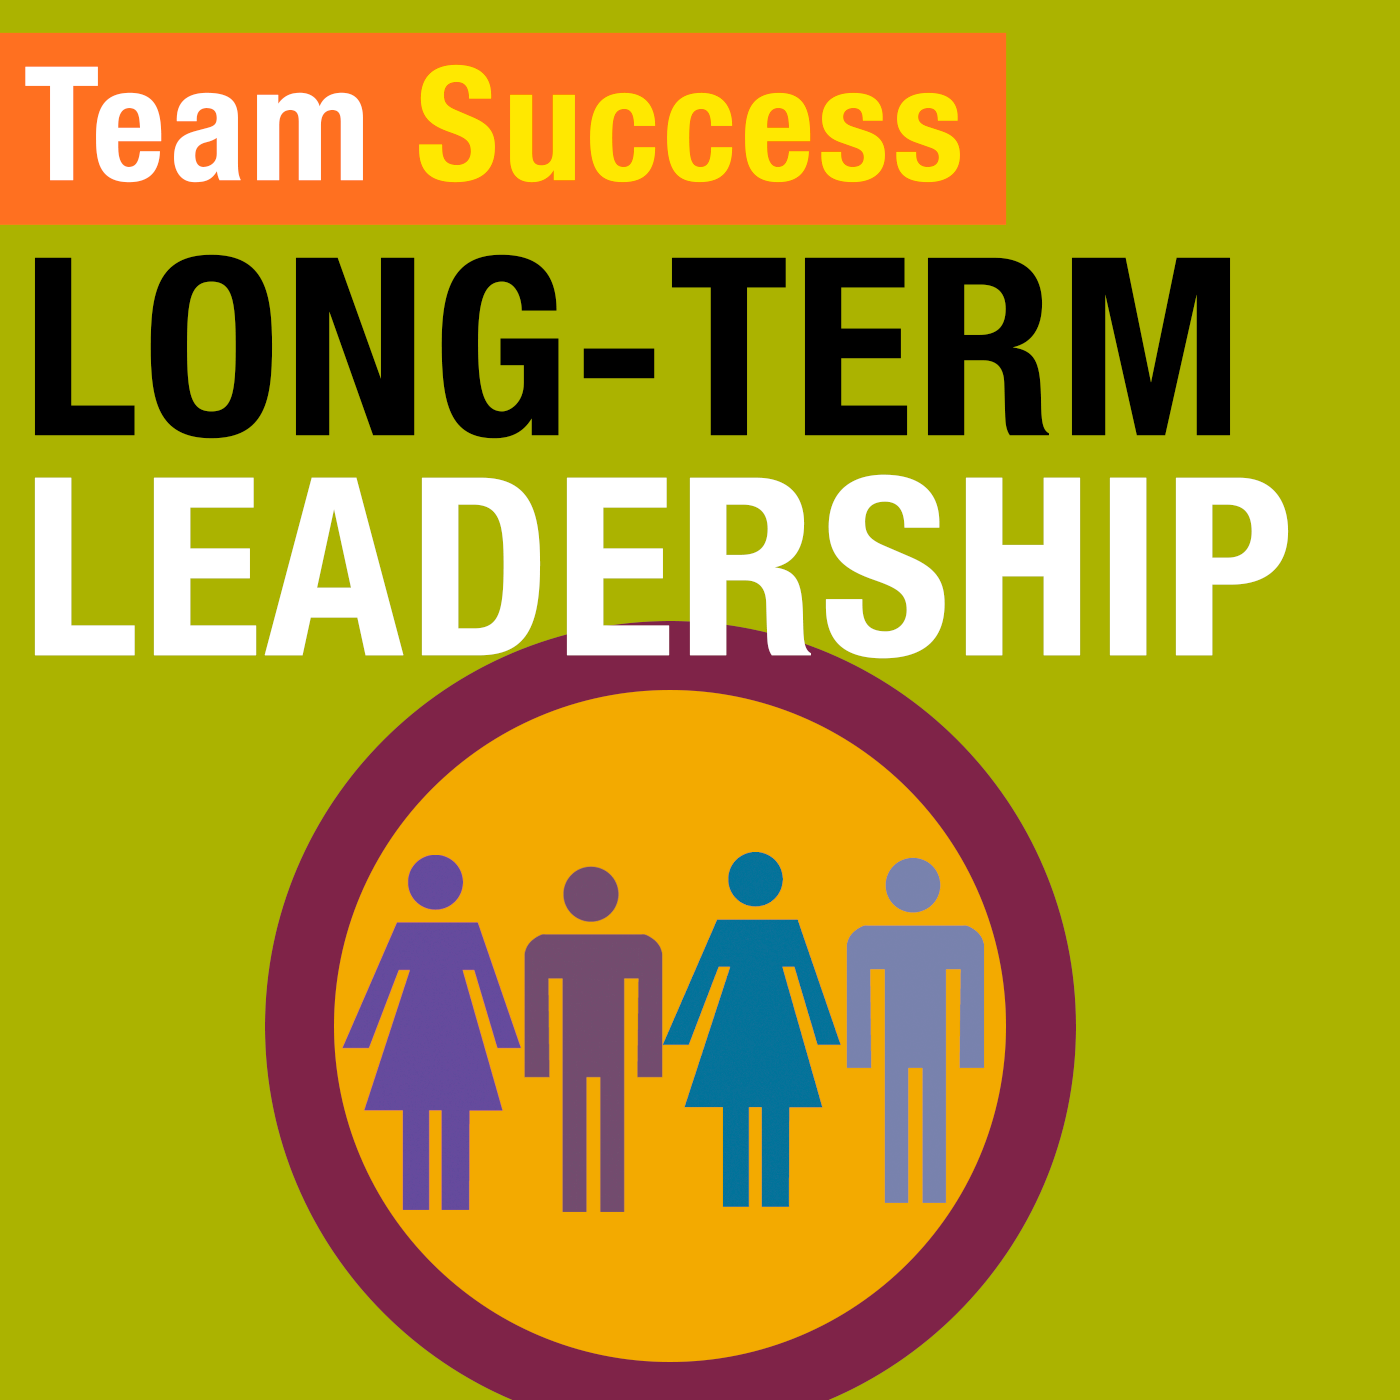 Long-Term Leadership